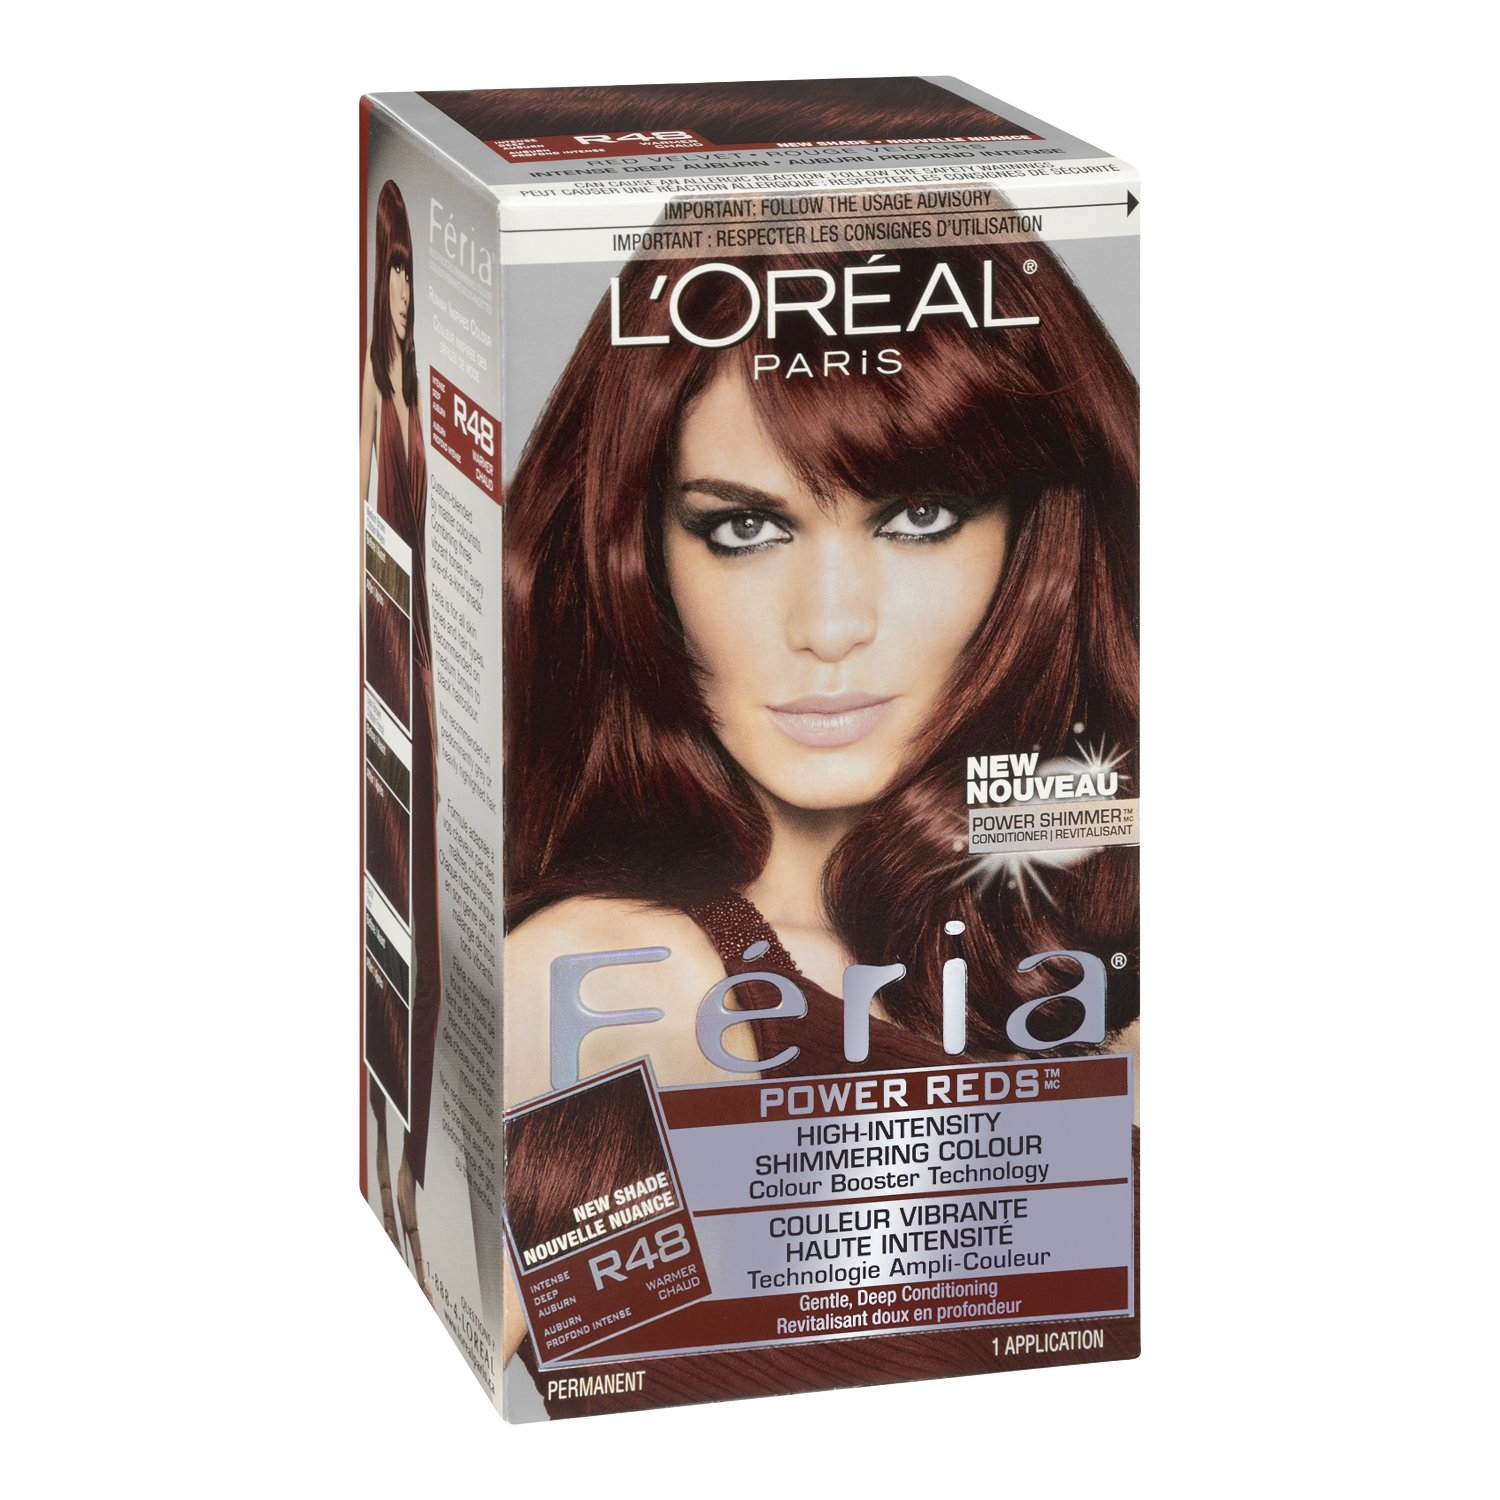 The look at home using l oreal paris feria smokey pastels in p2 smokey - Buy R48 Intense Deep Auburn Feria Power Reds Hair Color R48 Intense Deep Auburn Packaging May Vary Online At Low Prices In India Amazon In